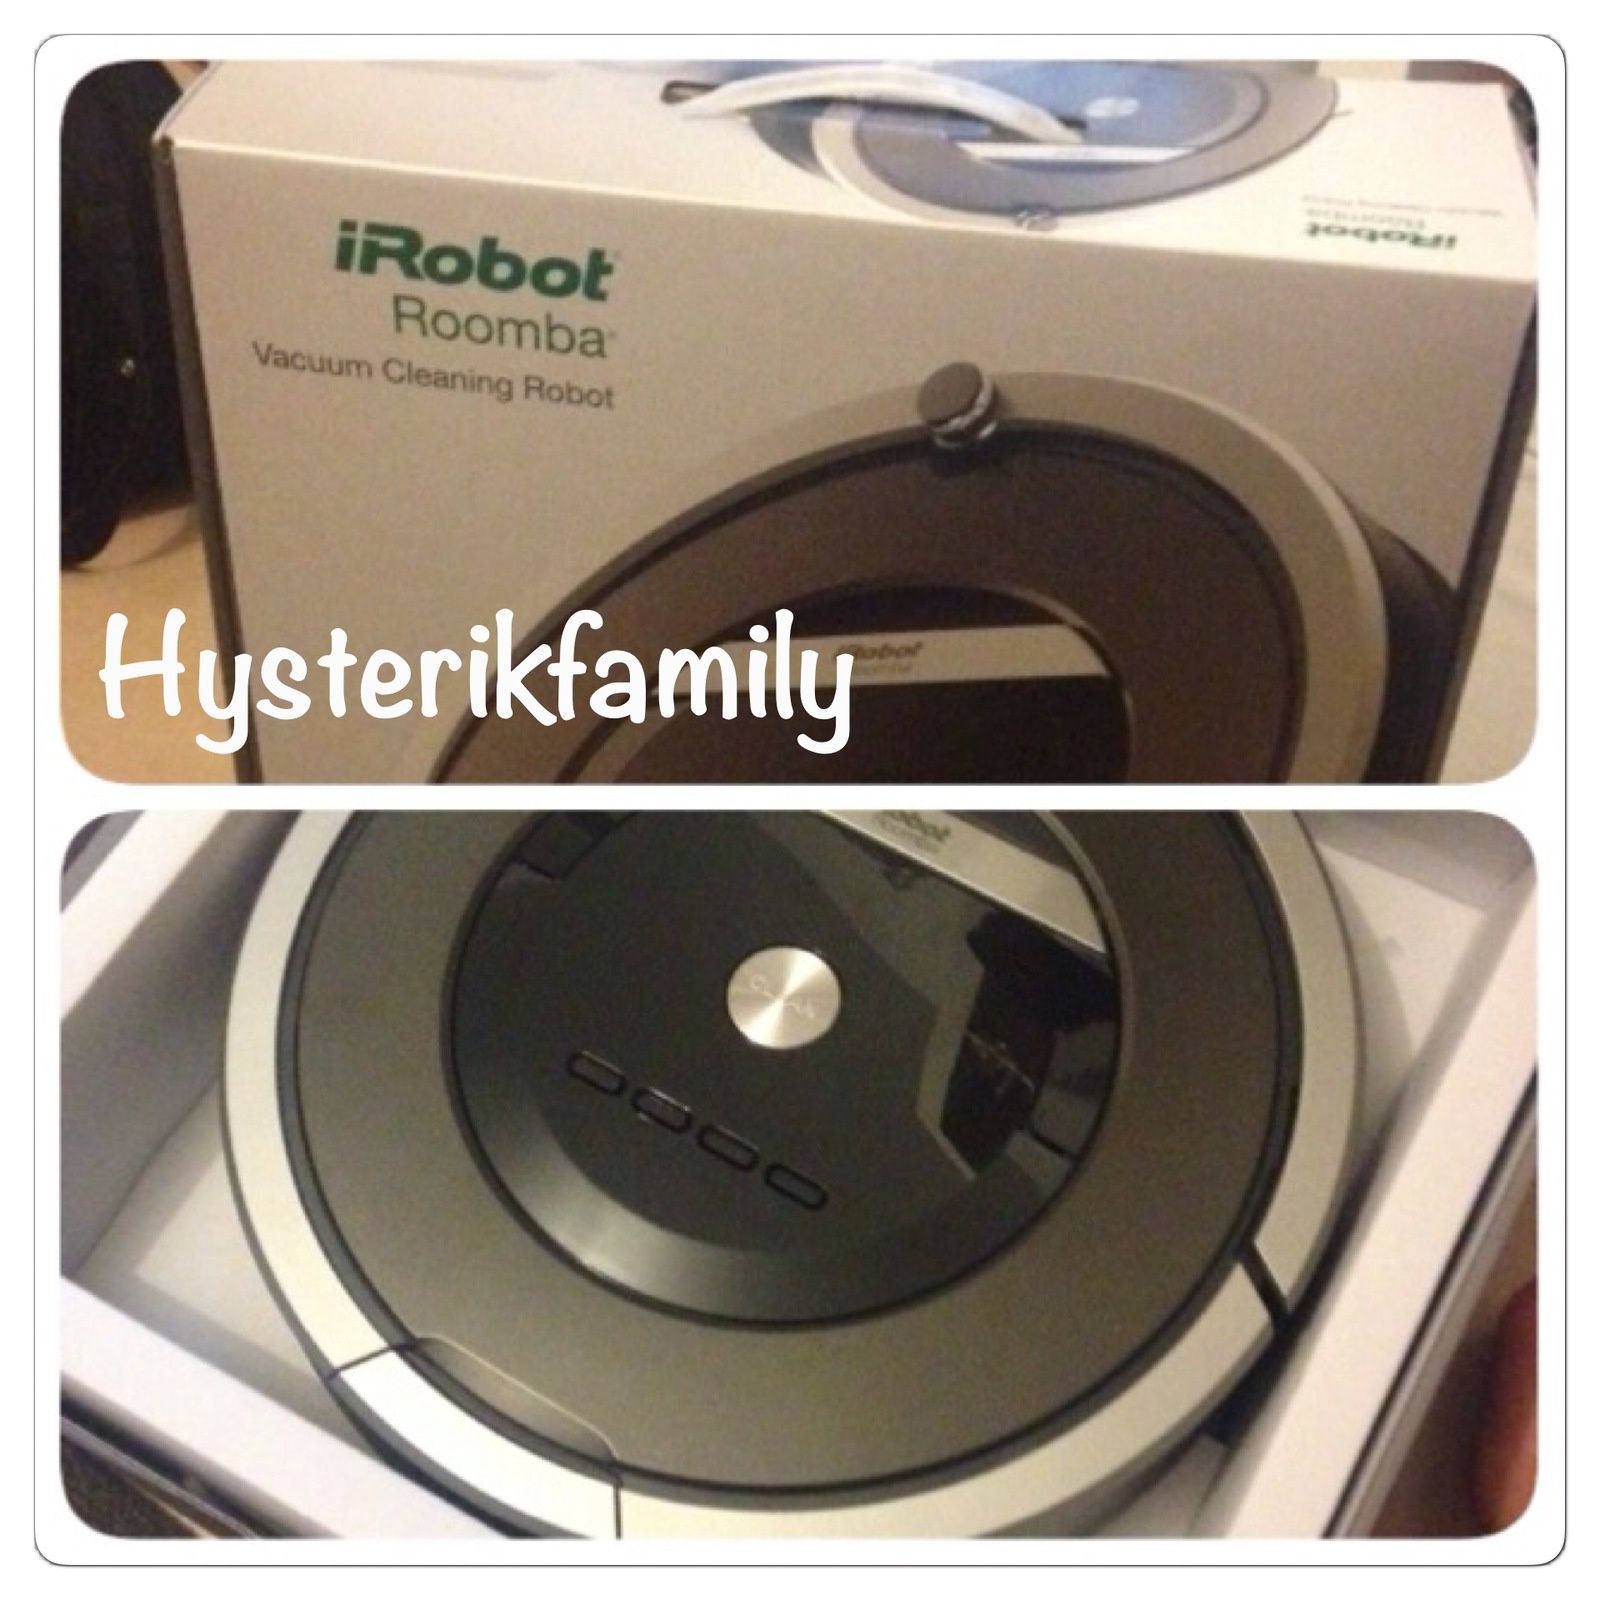 Le Irobot 870 de Roomba [test]